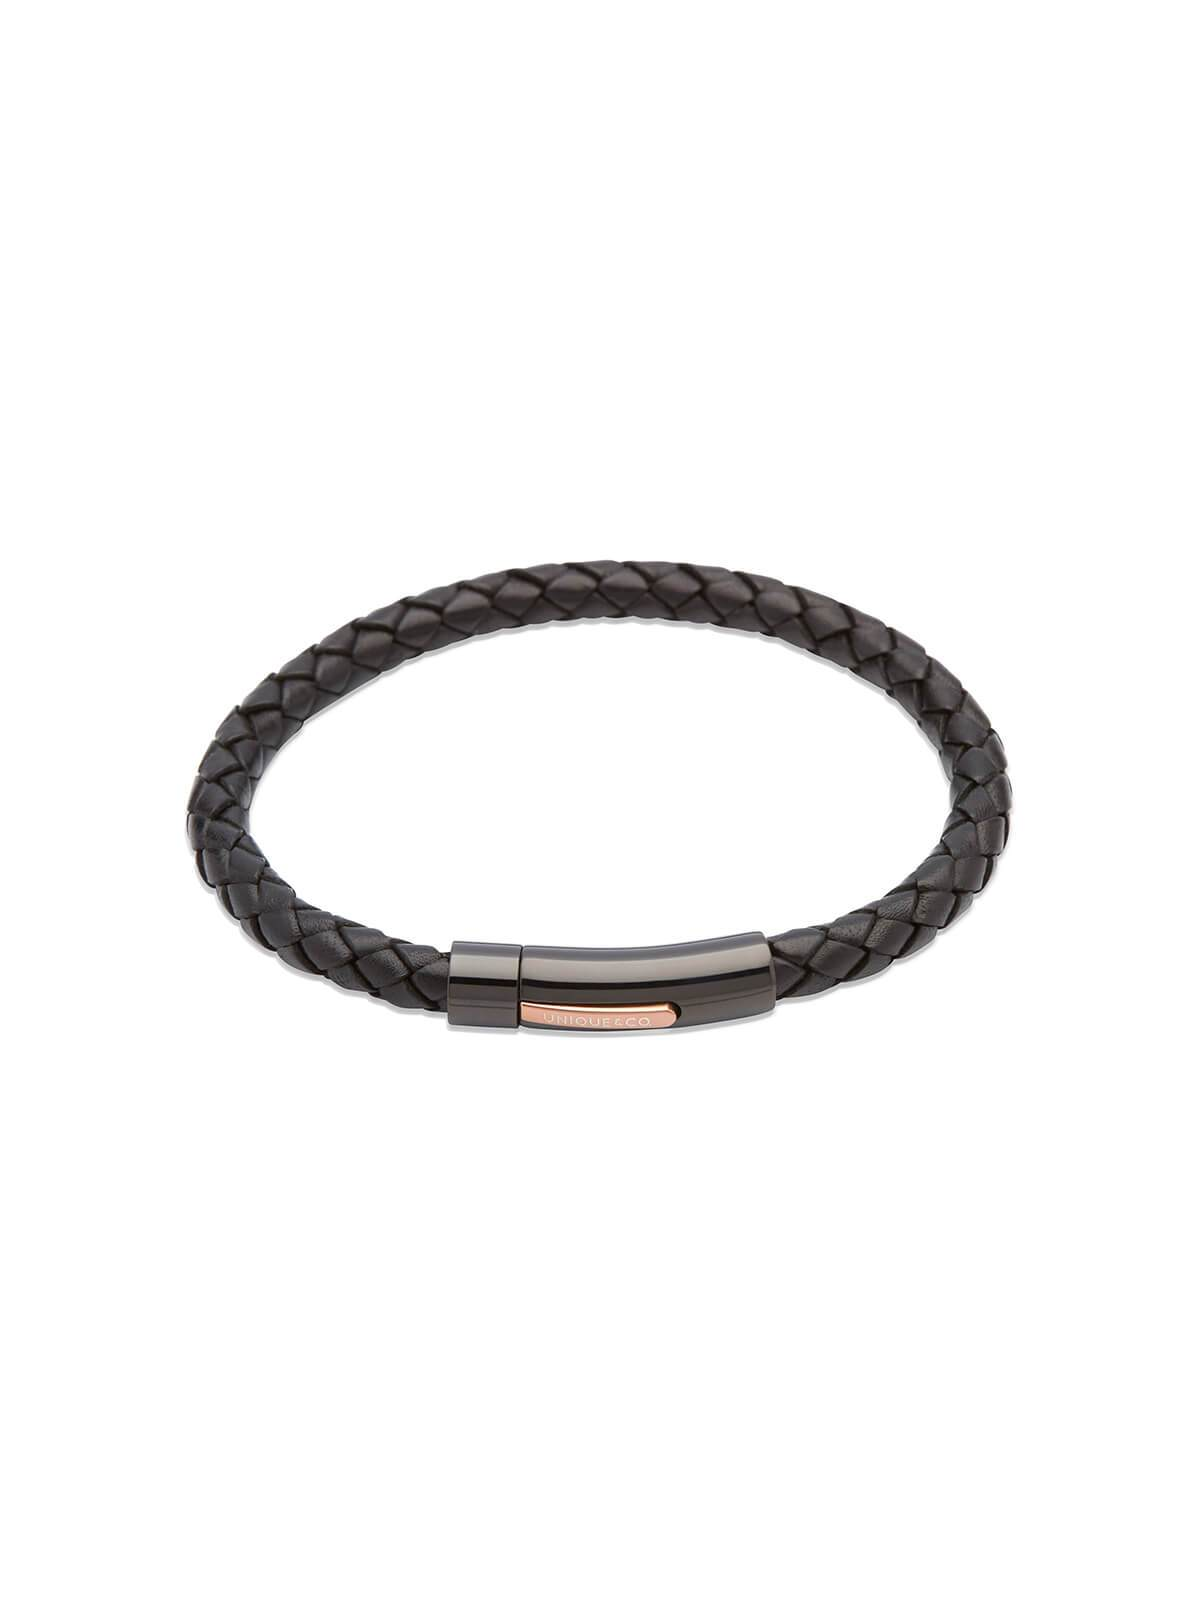 Unique & Co. 21cm Black Leather Bracelet B320BL/21CM